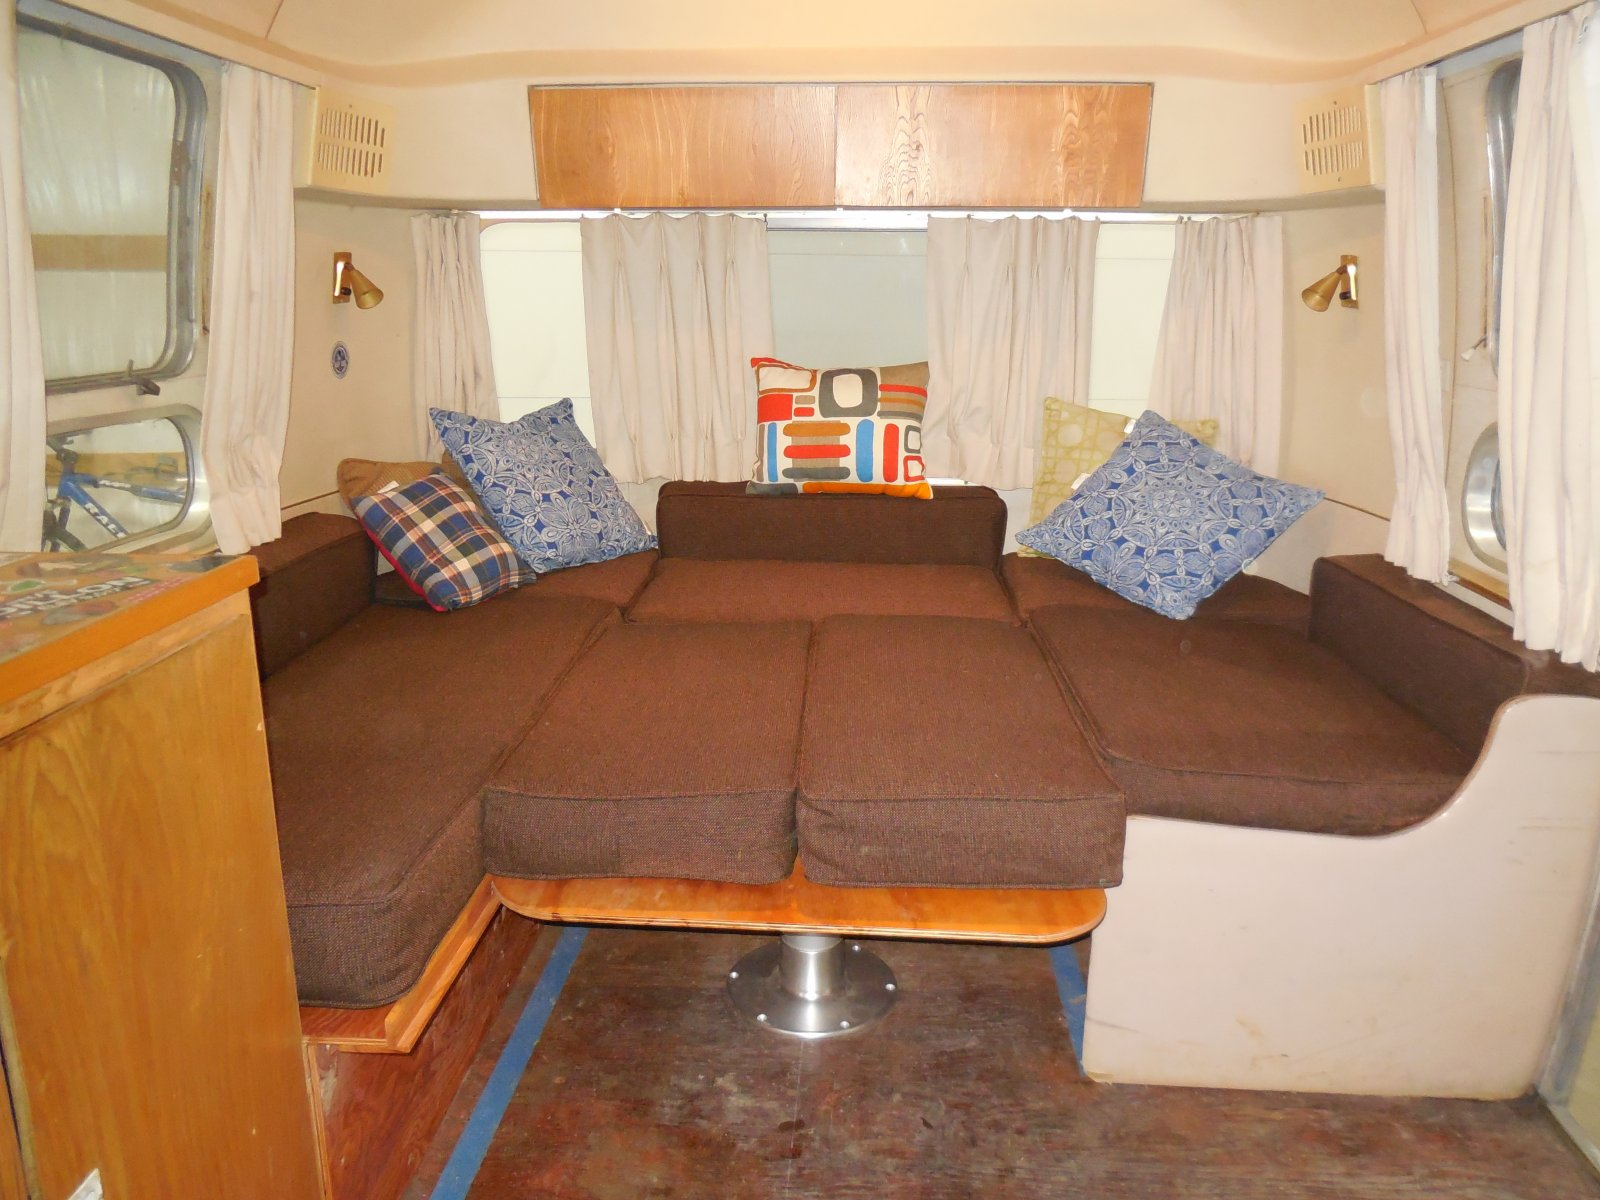 Click image for larger version  Name:1604 Dinette Done Bed.jpg Views:49 Size:261.4 KB ID:267840